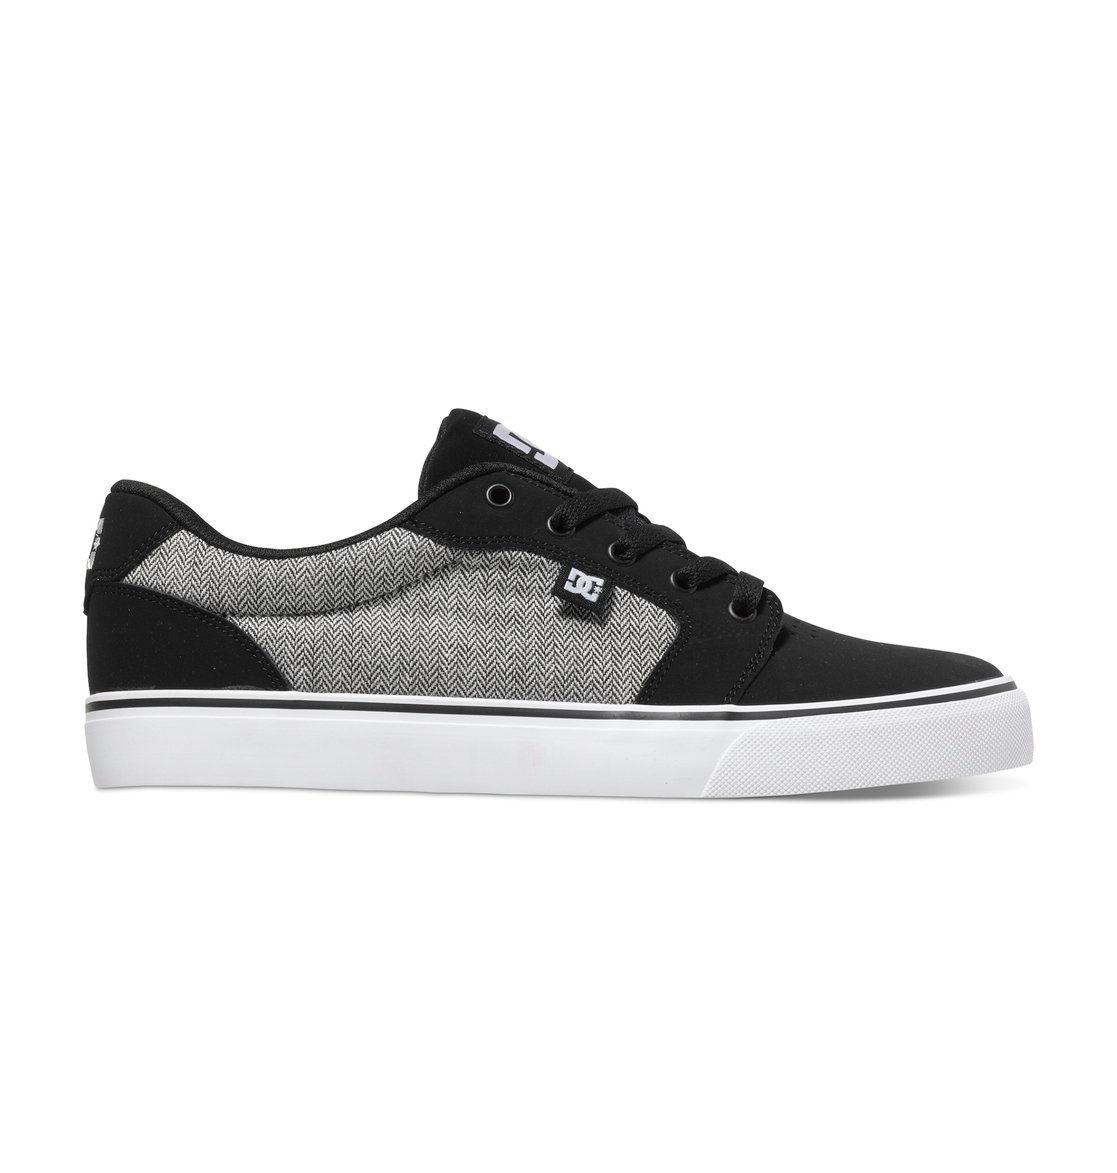 Free Shipping How Much DC Shoes Anvil(Men's) -Cabernet Best Seller Cheap Price Discount For Nice Pre Order Sale Online Cheap Pick A Best Gv4aHDWRd